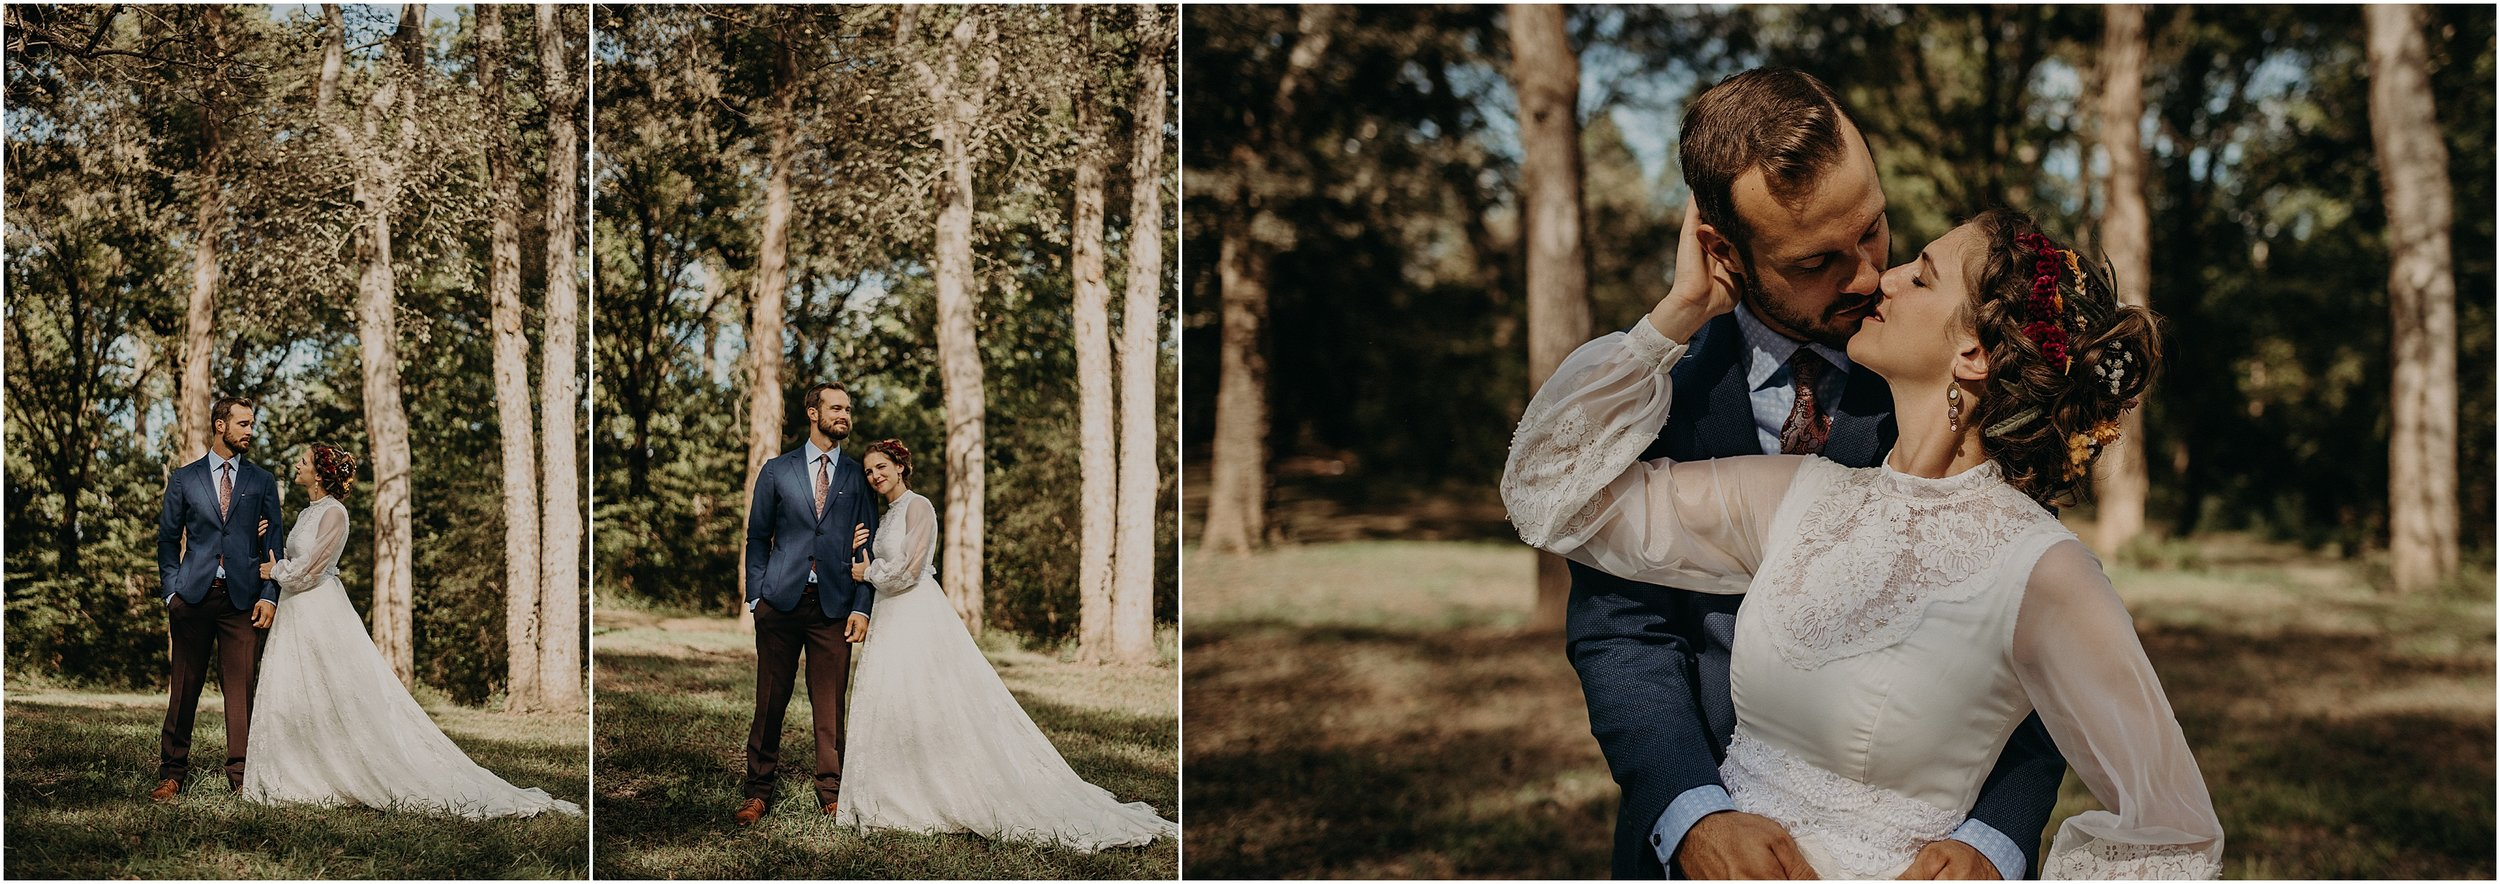 Forest portraits for the bride and groom